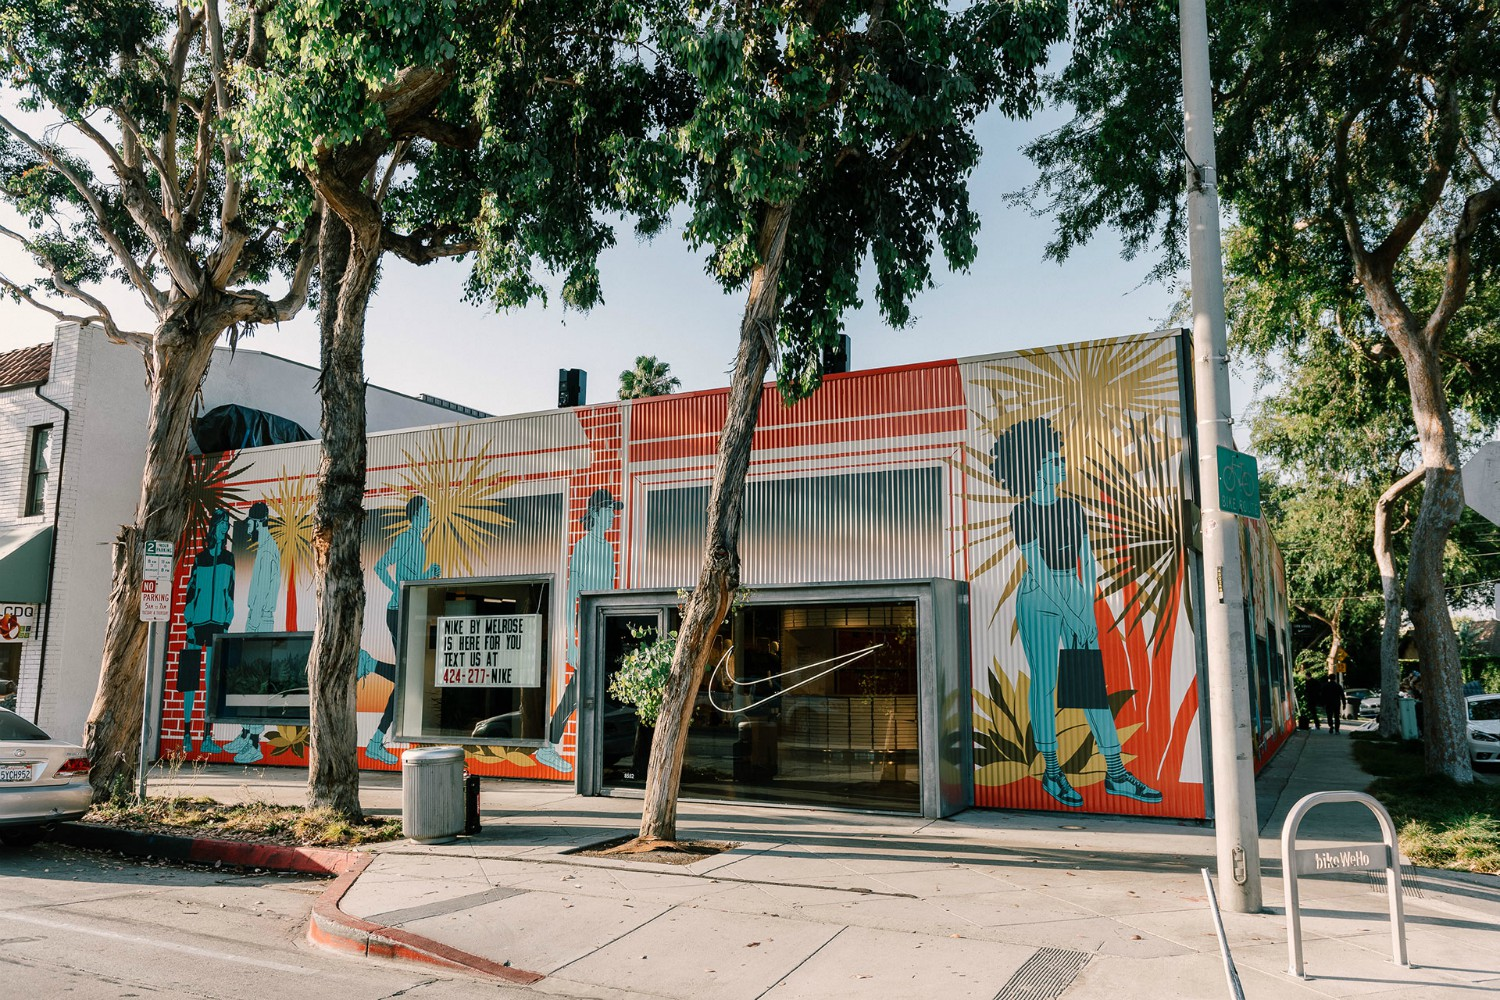 "The store's façade showcases Angelenos shopping and getting after sport against the backdrop of a classic SoCal sunset. Los Angeles native Bijou Karman, the artist and illustrator who designed the mural that she calls ""Sunsets on Melrose,"" says she intended for it to be a re-imagined walkthrough of a typical LA day."